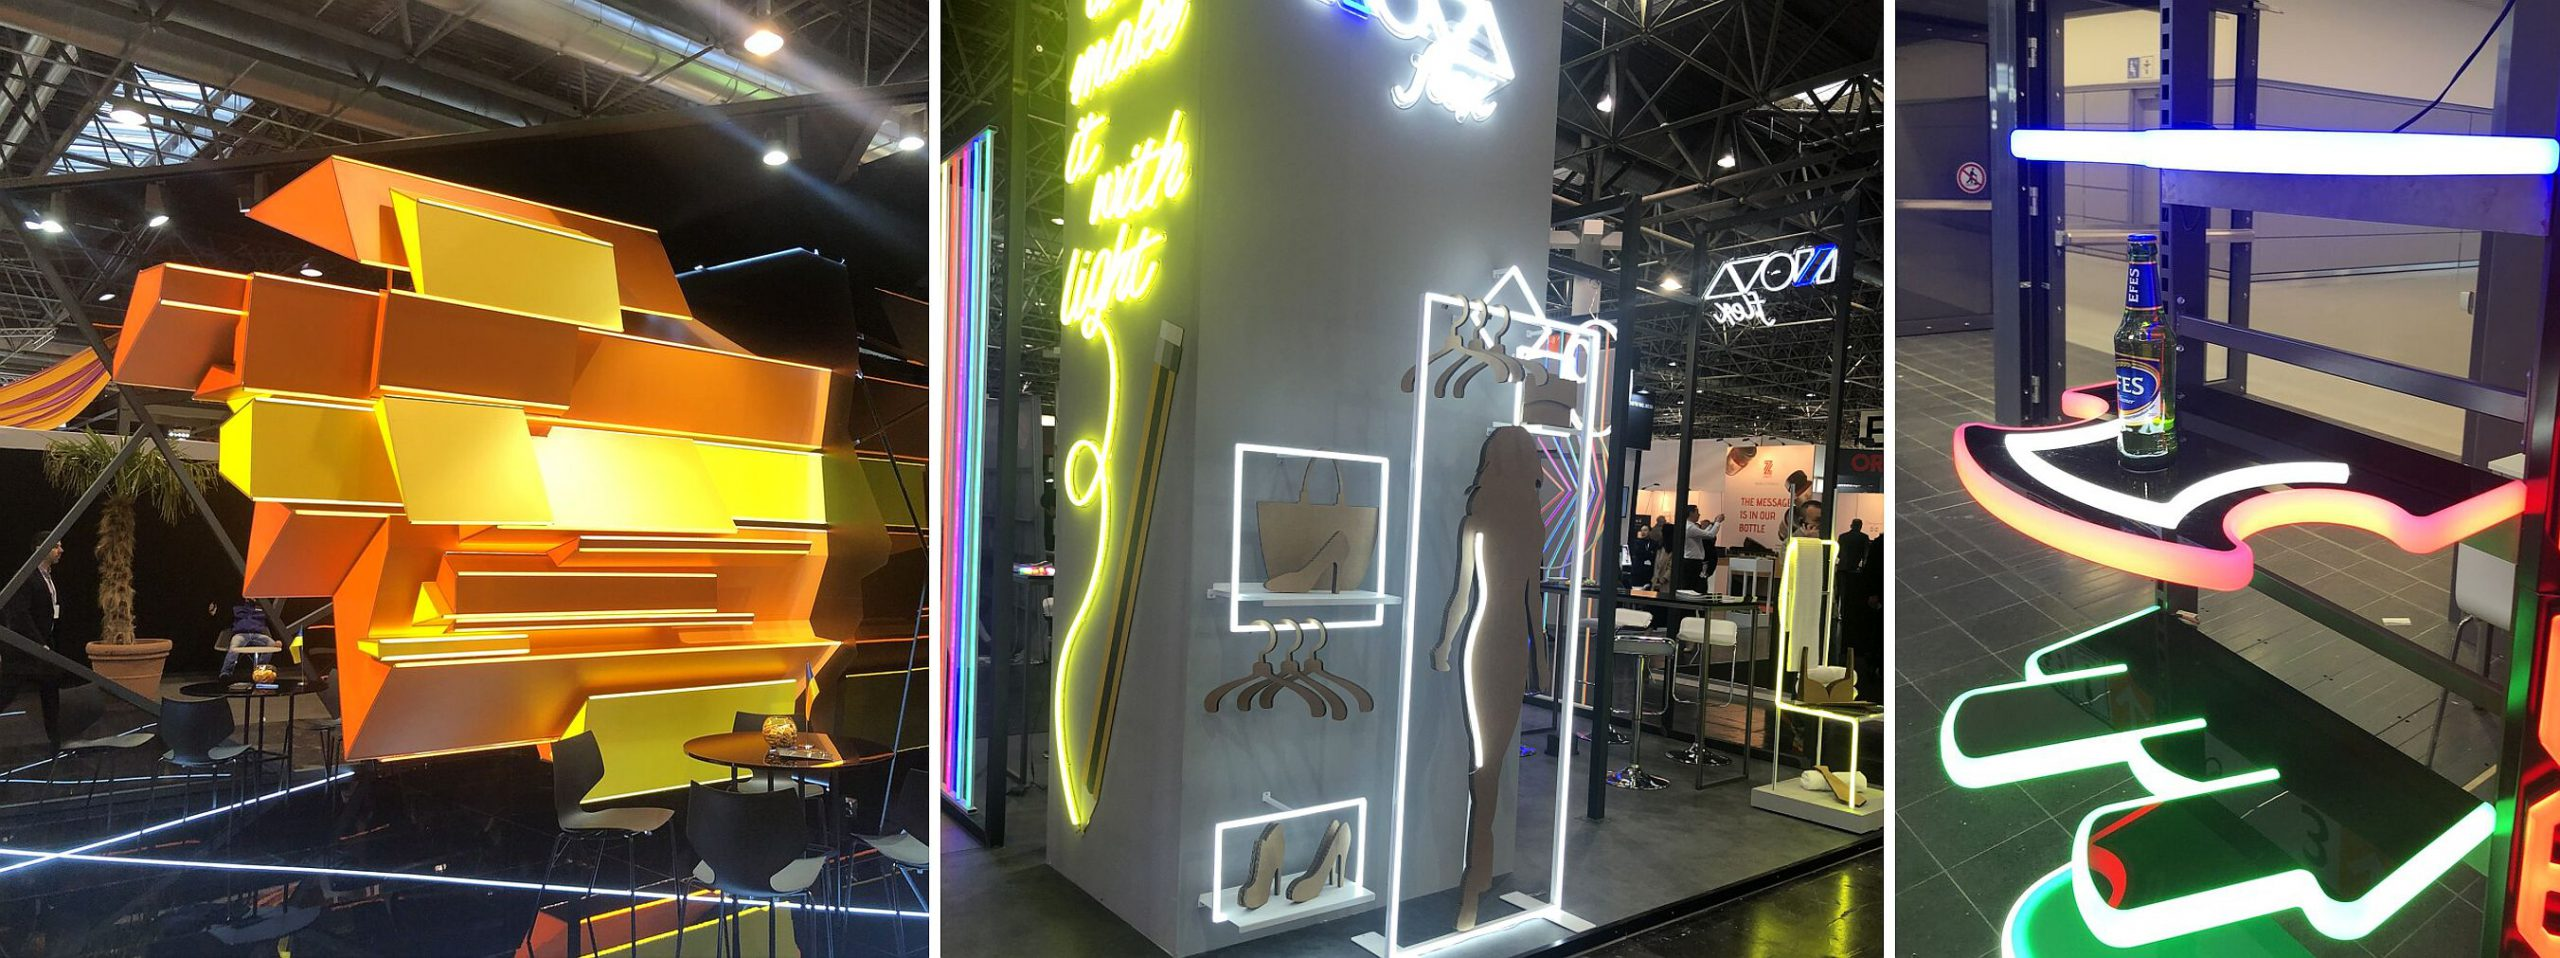 The Moss team observed many trends at EuroShop